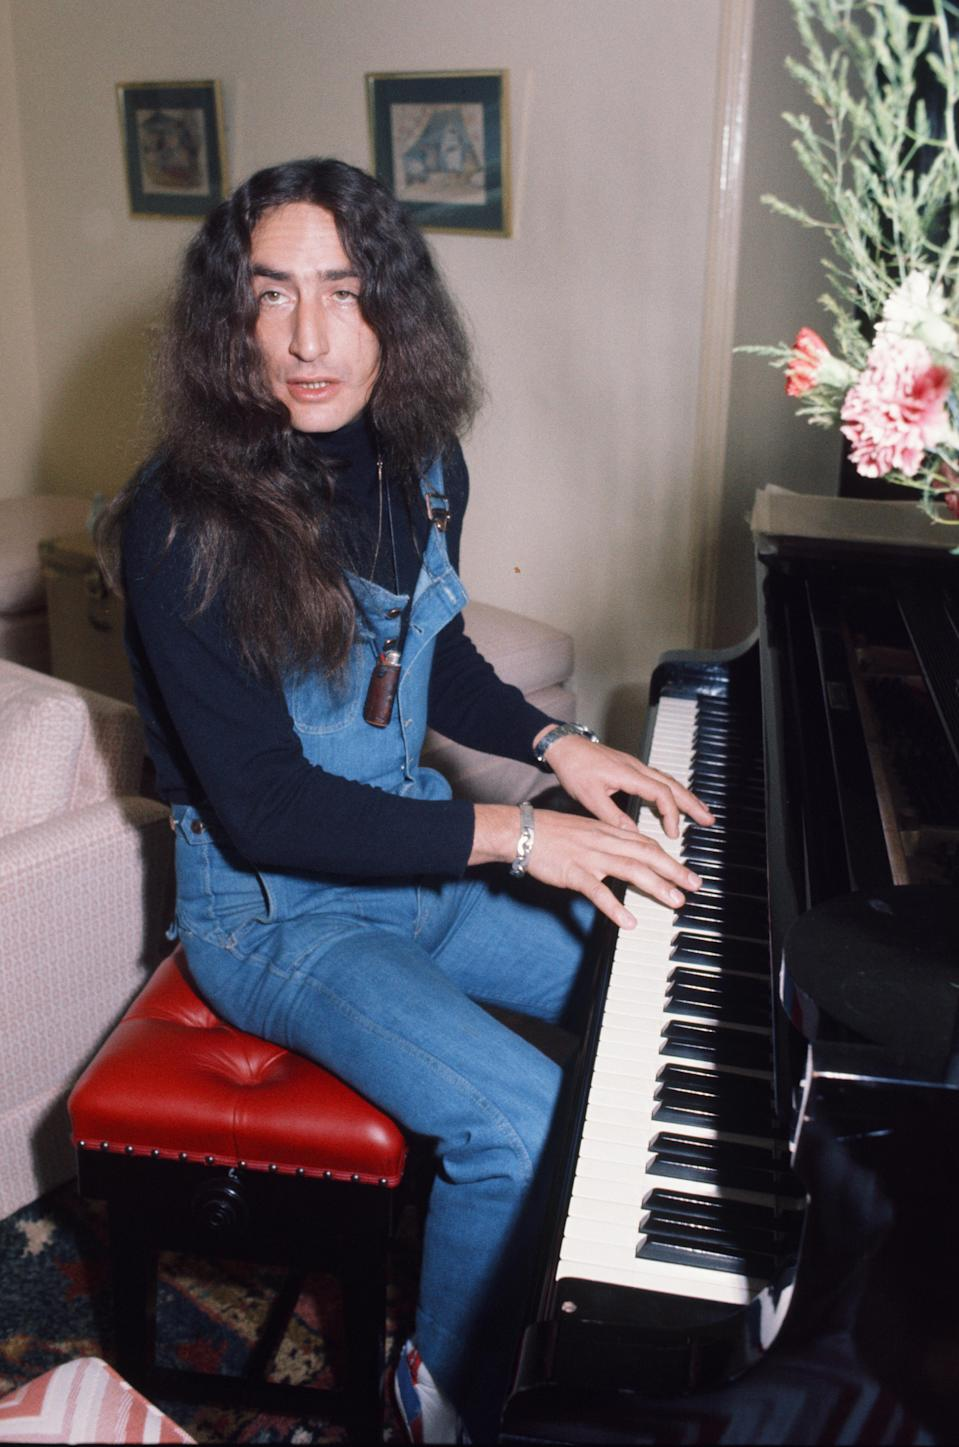 Ken Hensley of Uriah Heep playing piano at home,1977. (Photo by Koh Hasebe/Shinko Music/Getty Images)